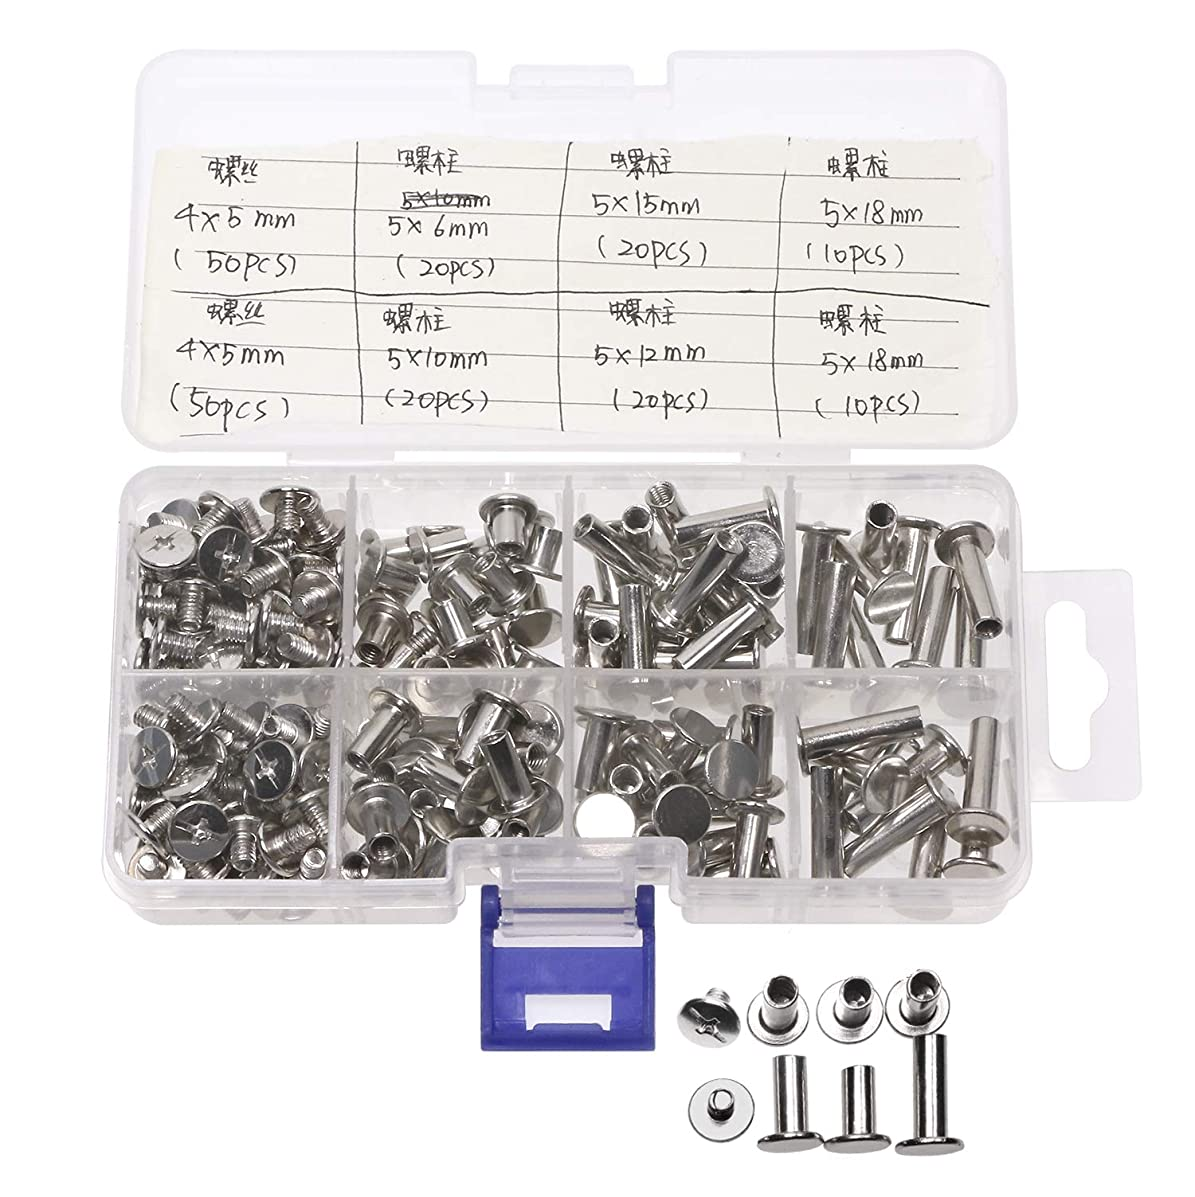 Mini Skater 100 Set Binding Screws 5 Size Metal Round Flat Cross Head Leather Screw Nail Rivet Button Solid Belt Tack Screw Assortment Kit For Scrapbook Photo Albums Bookbinding DIY Leather Decoration